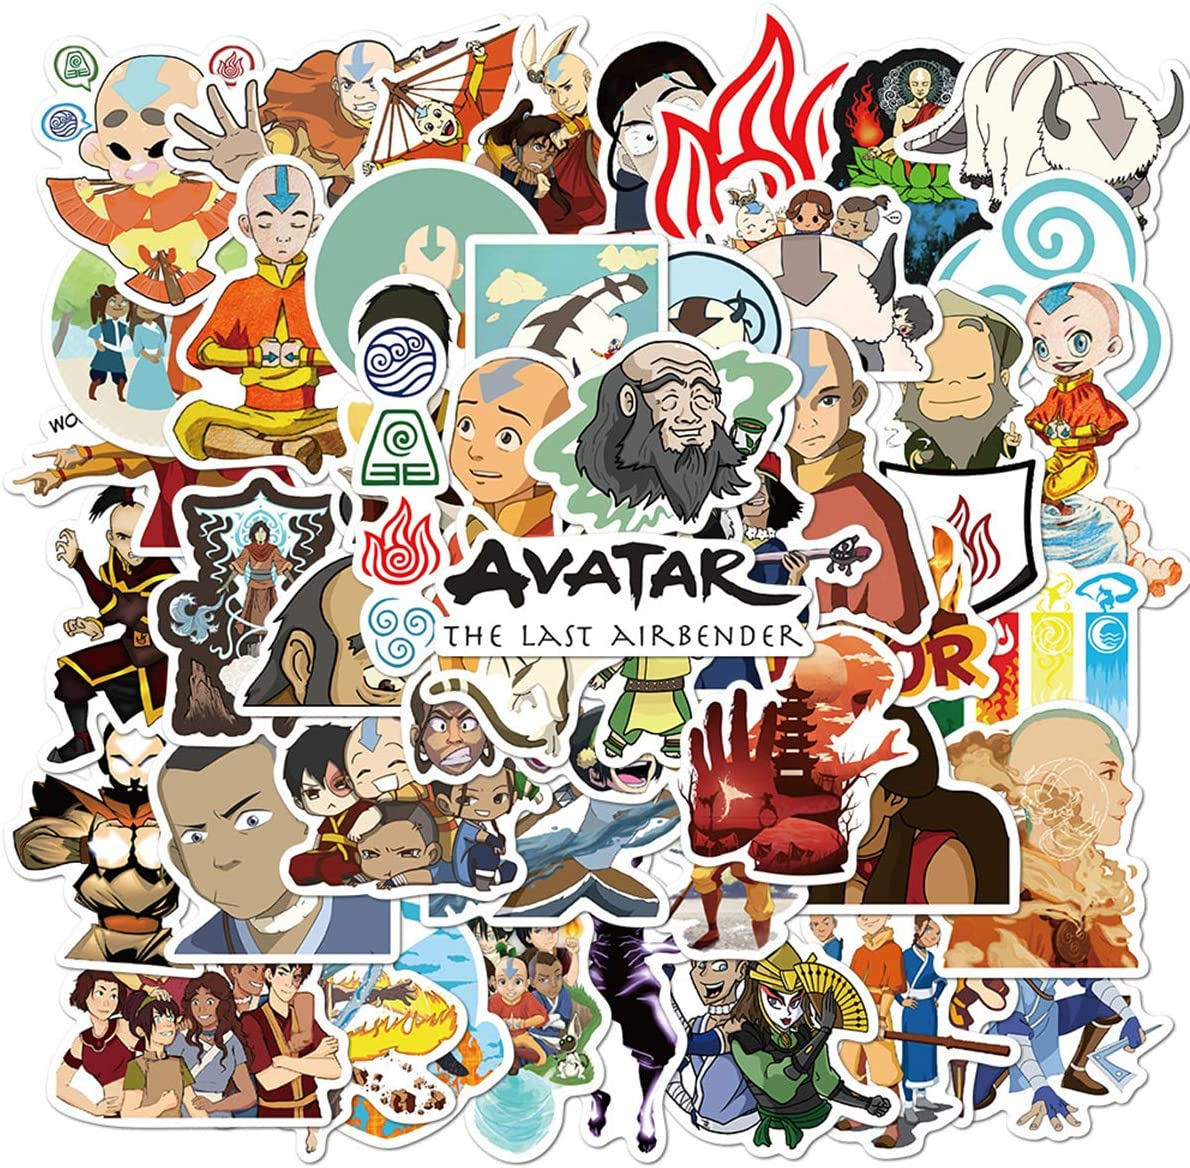 Avatar The Last Airbender Stickers Cartoon Laptop Stickers Vinyl Sticker Computer Car Skateboard Motorcycle Bicycle Luggage Guitar Bike Decal 50pcs Pack (Avatar The Last Airbende)